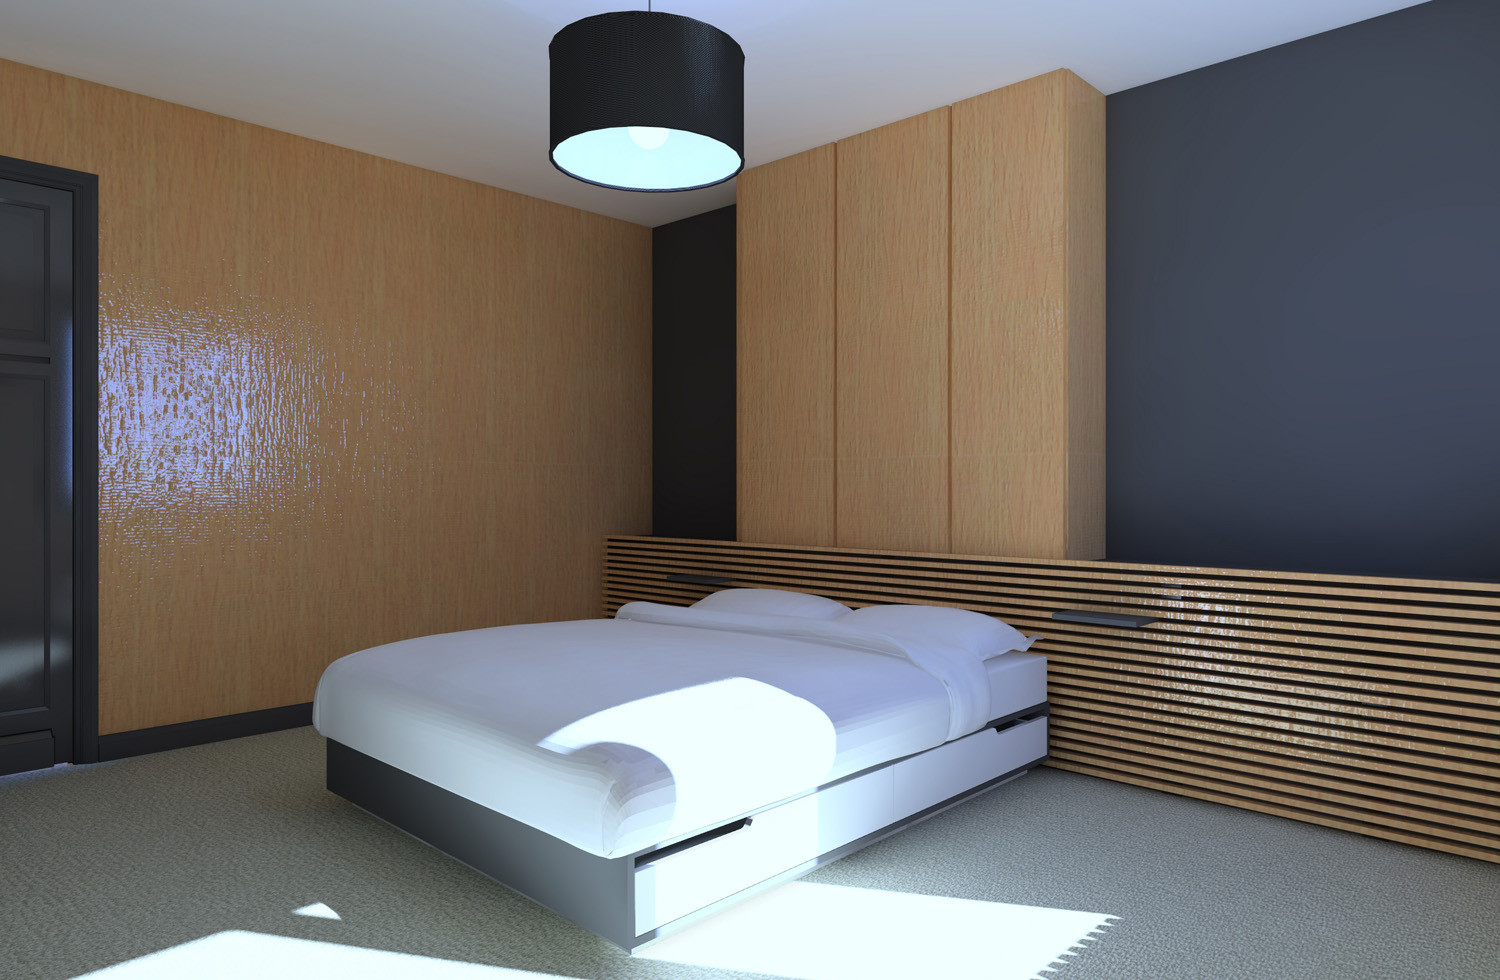 Agencement chambre - Agencement chambre ...